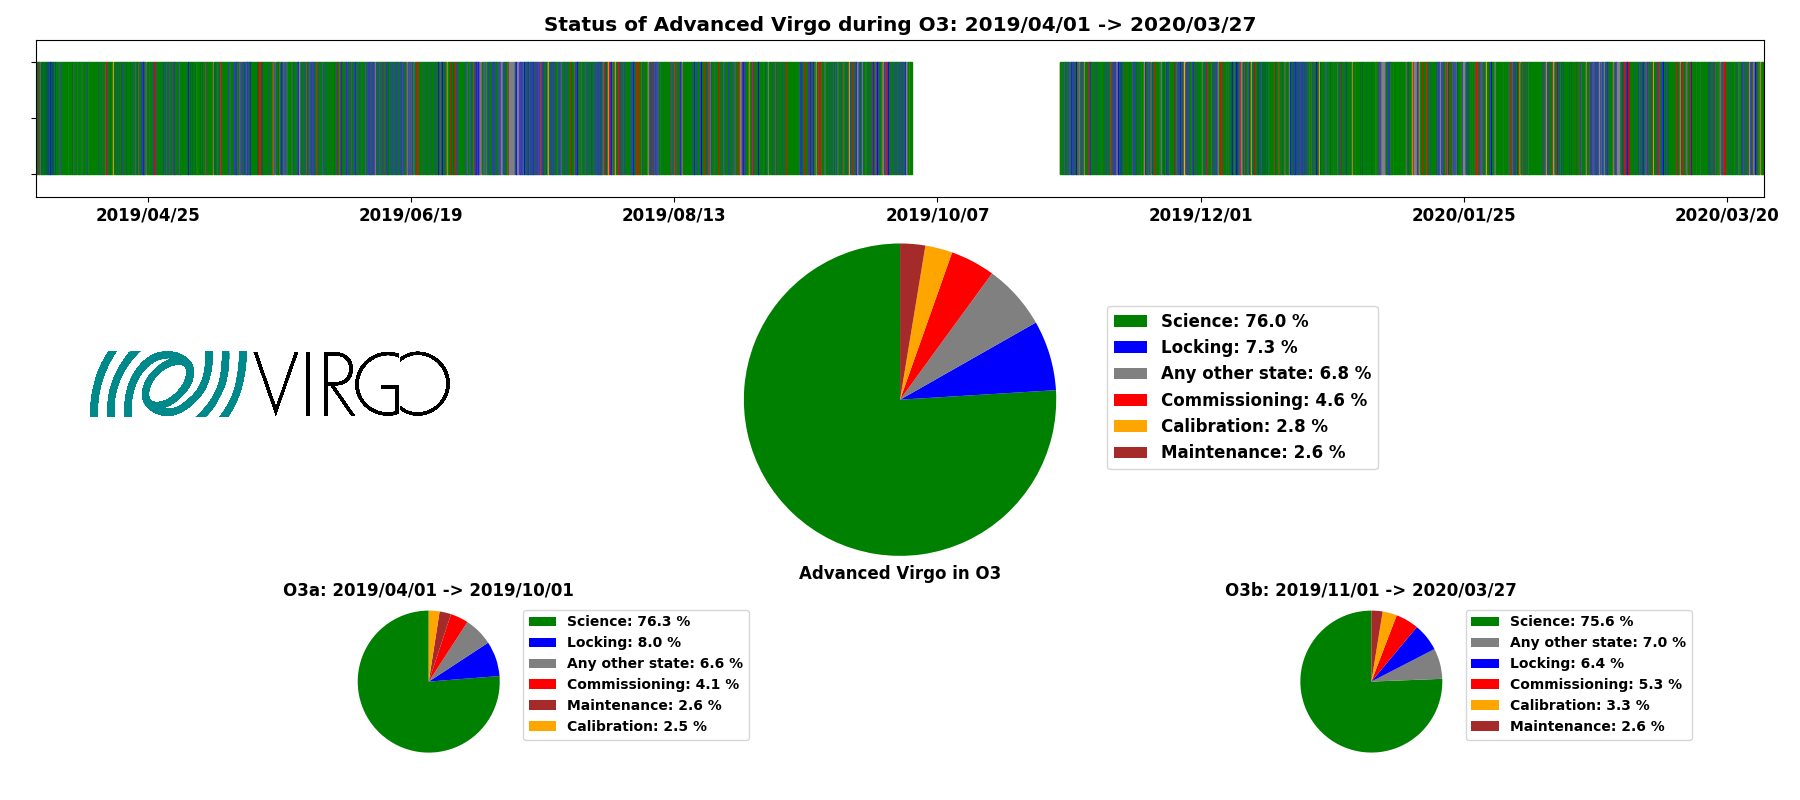 Status of Advanced Virgo during O3